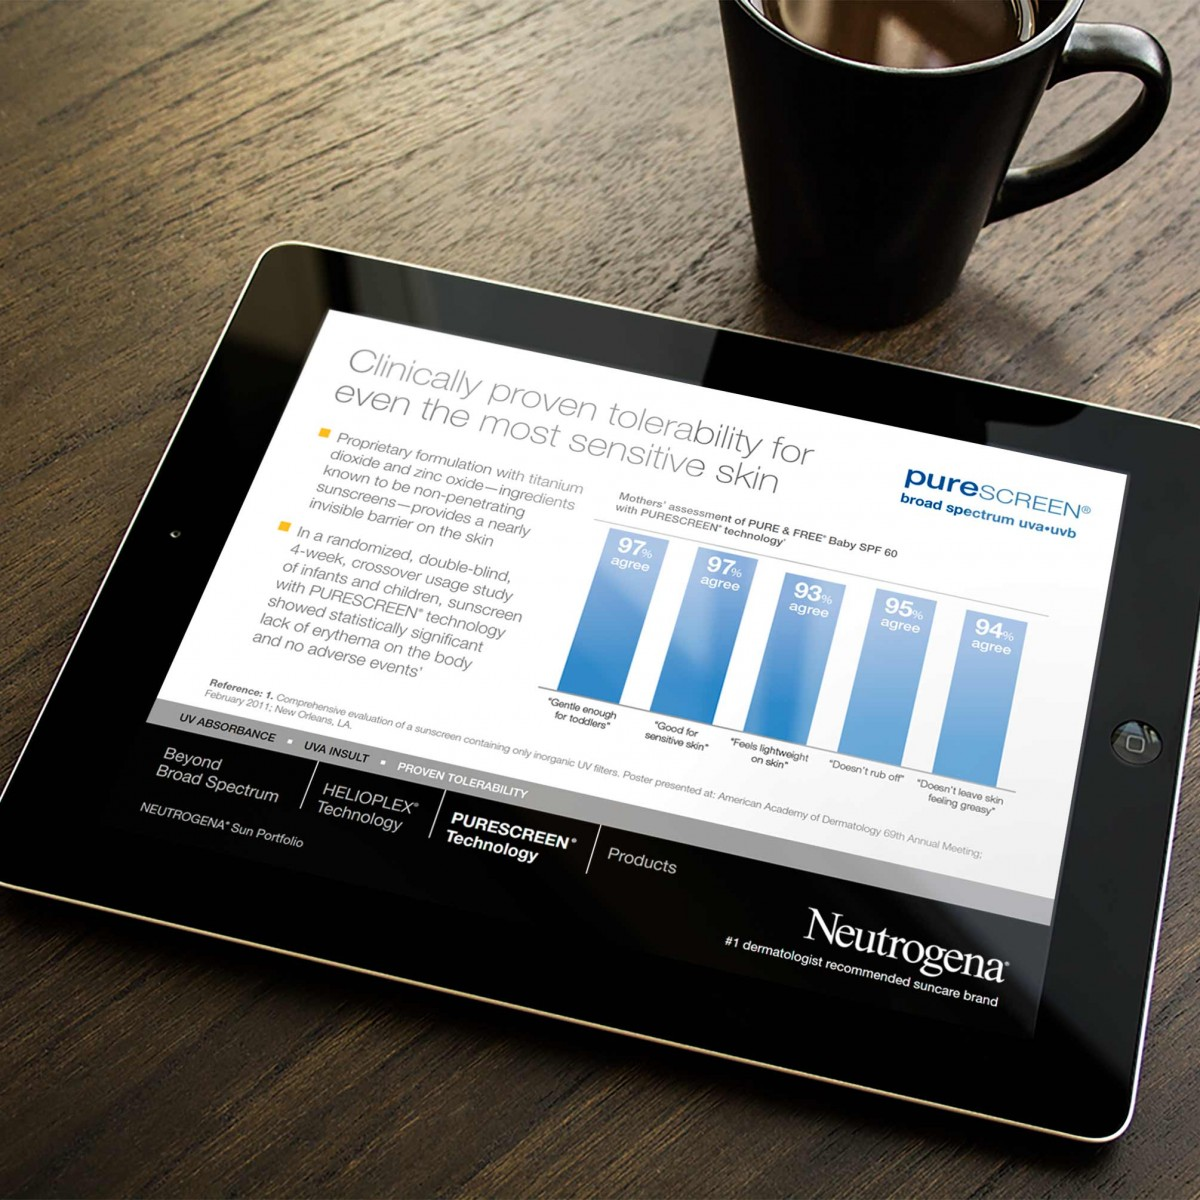 Neutrogena Interactive iPad Salesforce Sales Aid